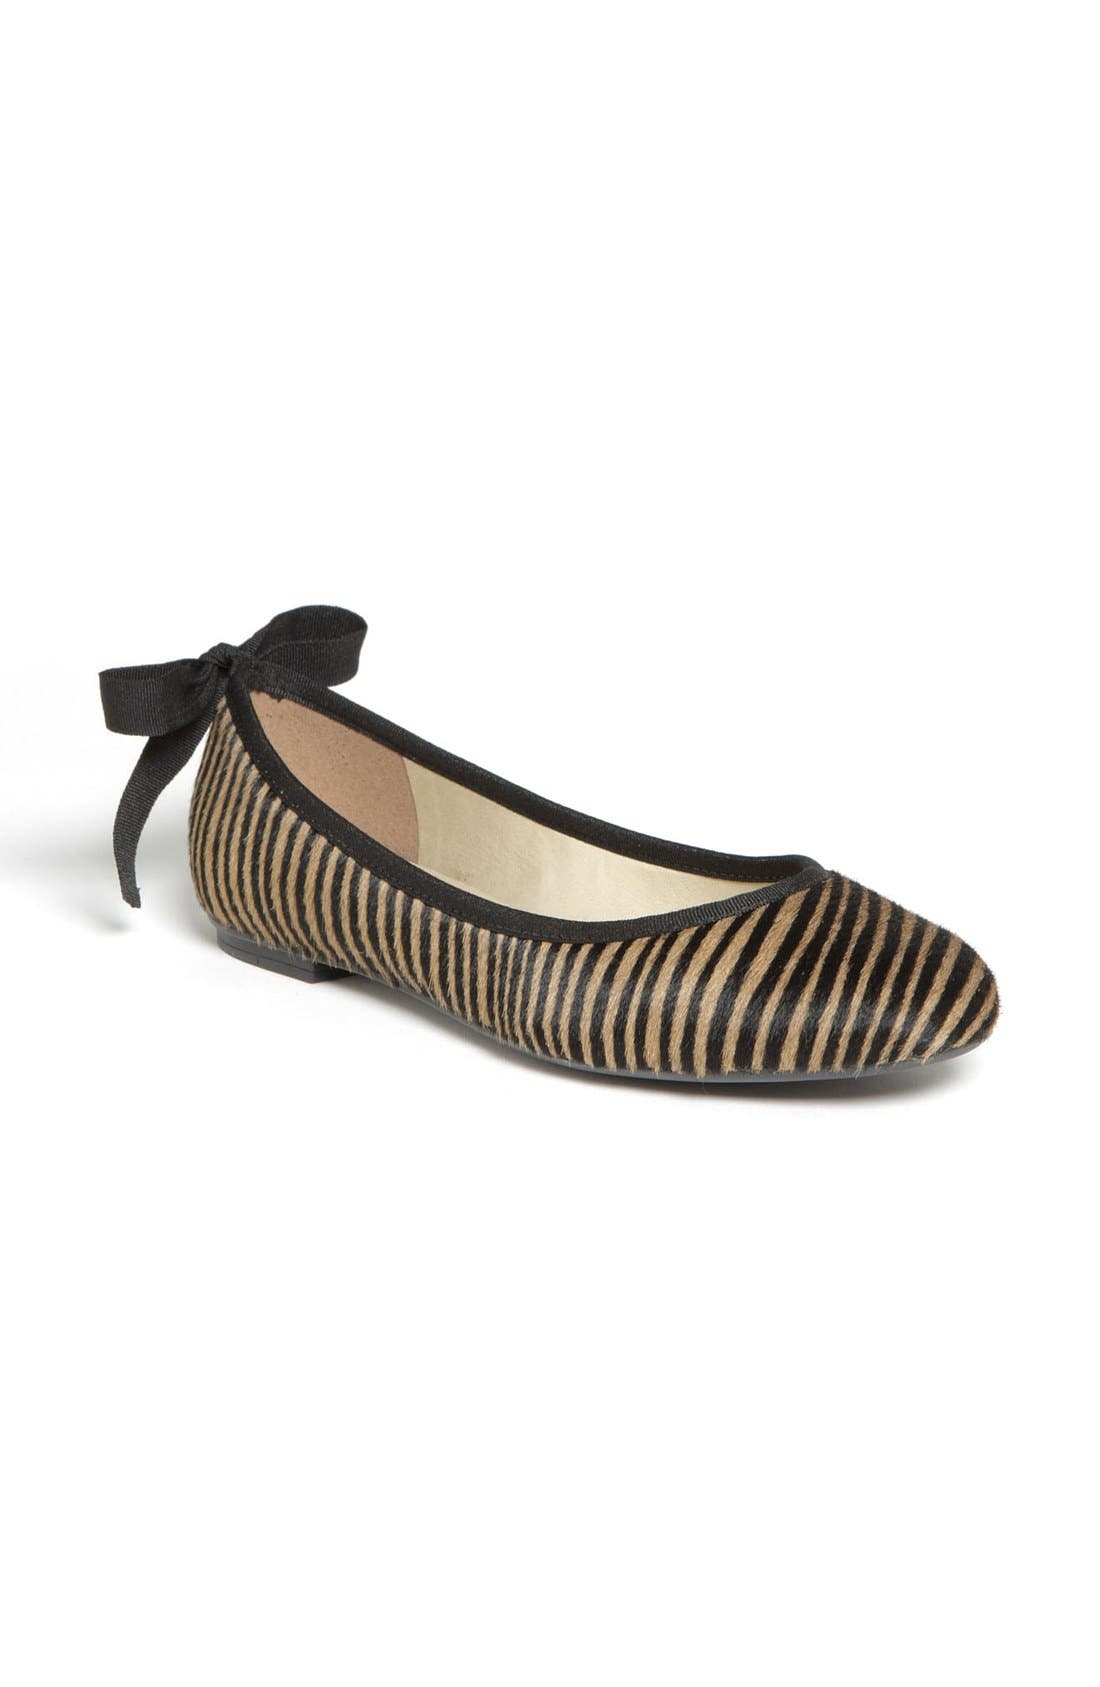 Main Image - French Sole 'Gale' Ballet Flat